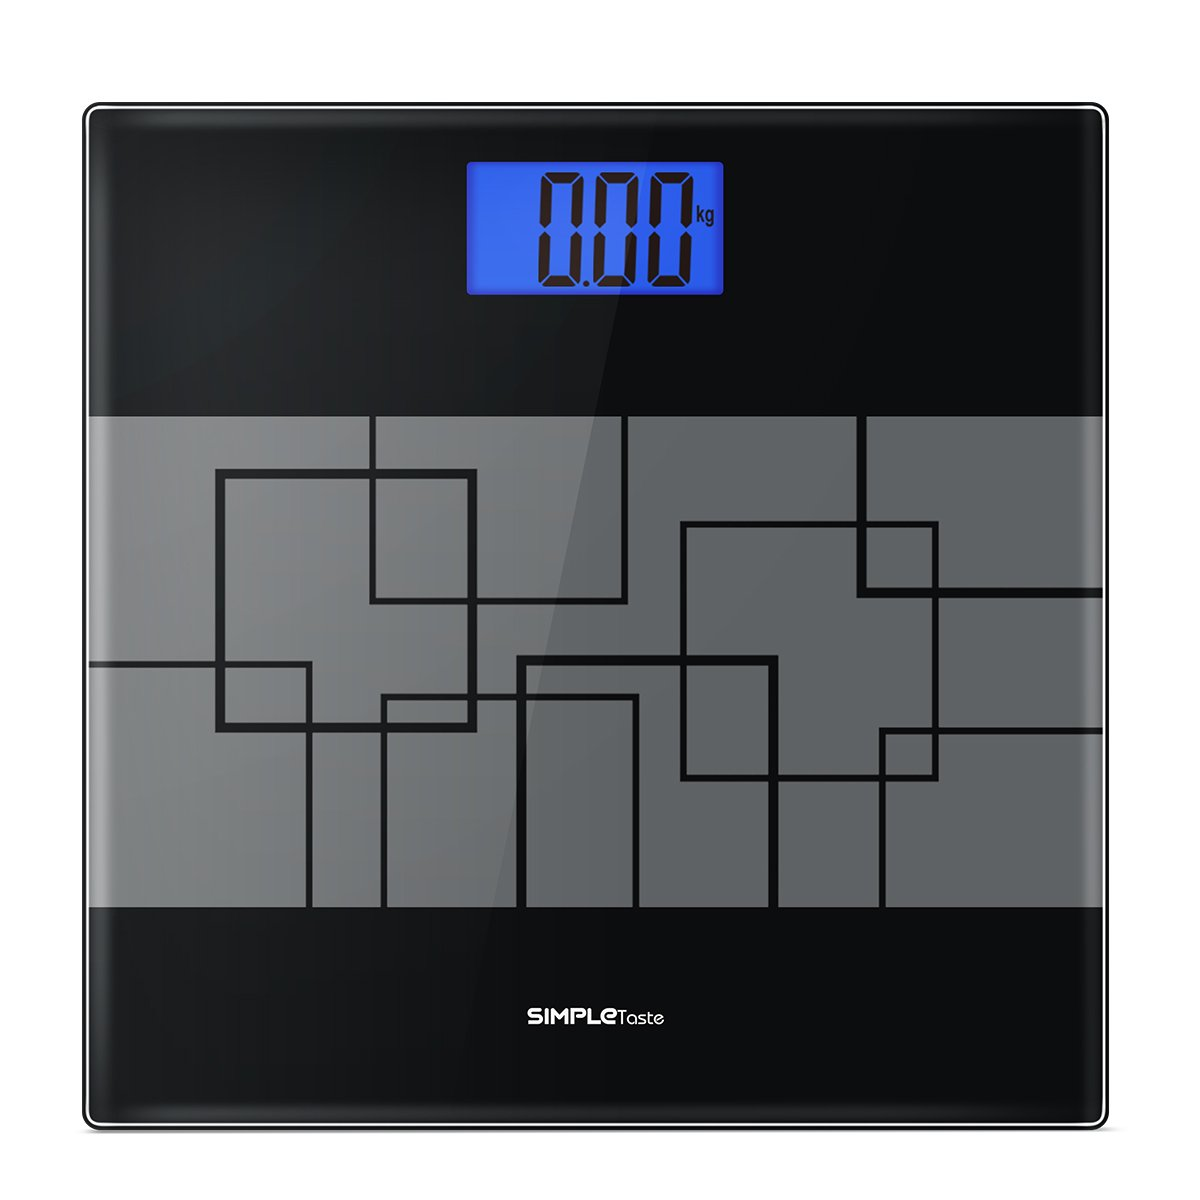 SimpleTaste Precision Digital Body Weight Scale Bathroom Scale with Step-on Technology and Lighted Display, 400lb /180kg by SimpleTaste